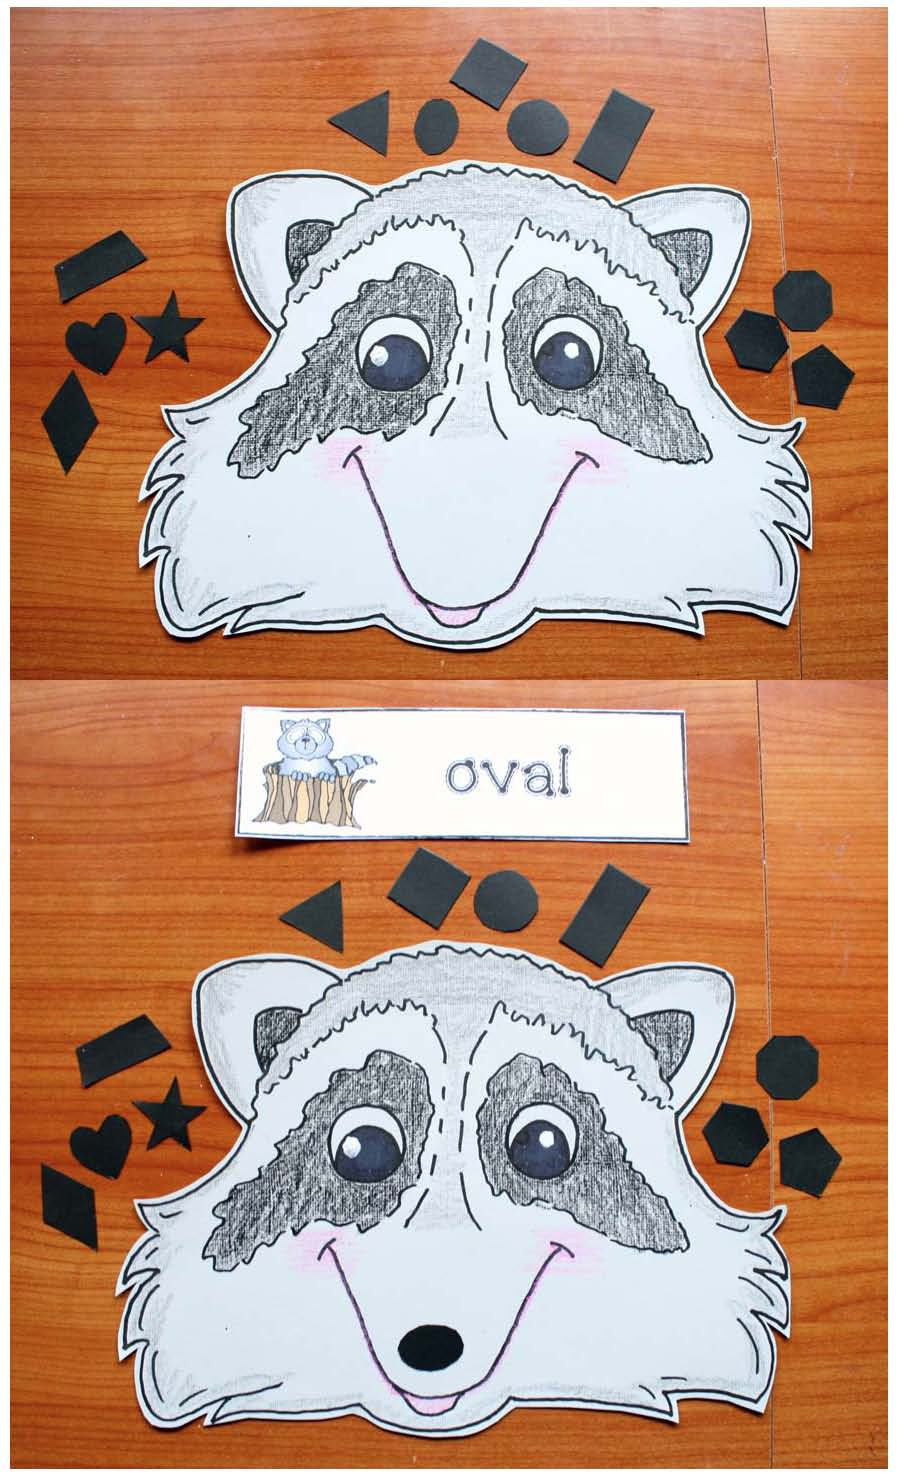 kissing hand activities, shape activities, shape crafts, raccoon activities, raccoon crafts, vertex activities, shape attribute activities,